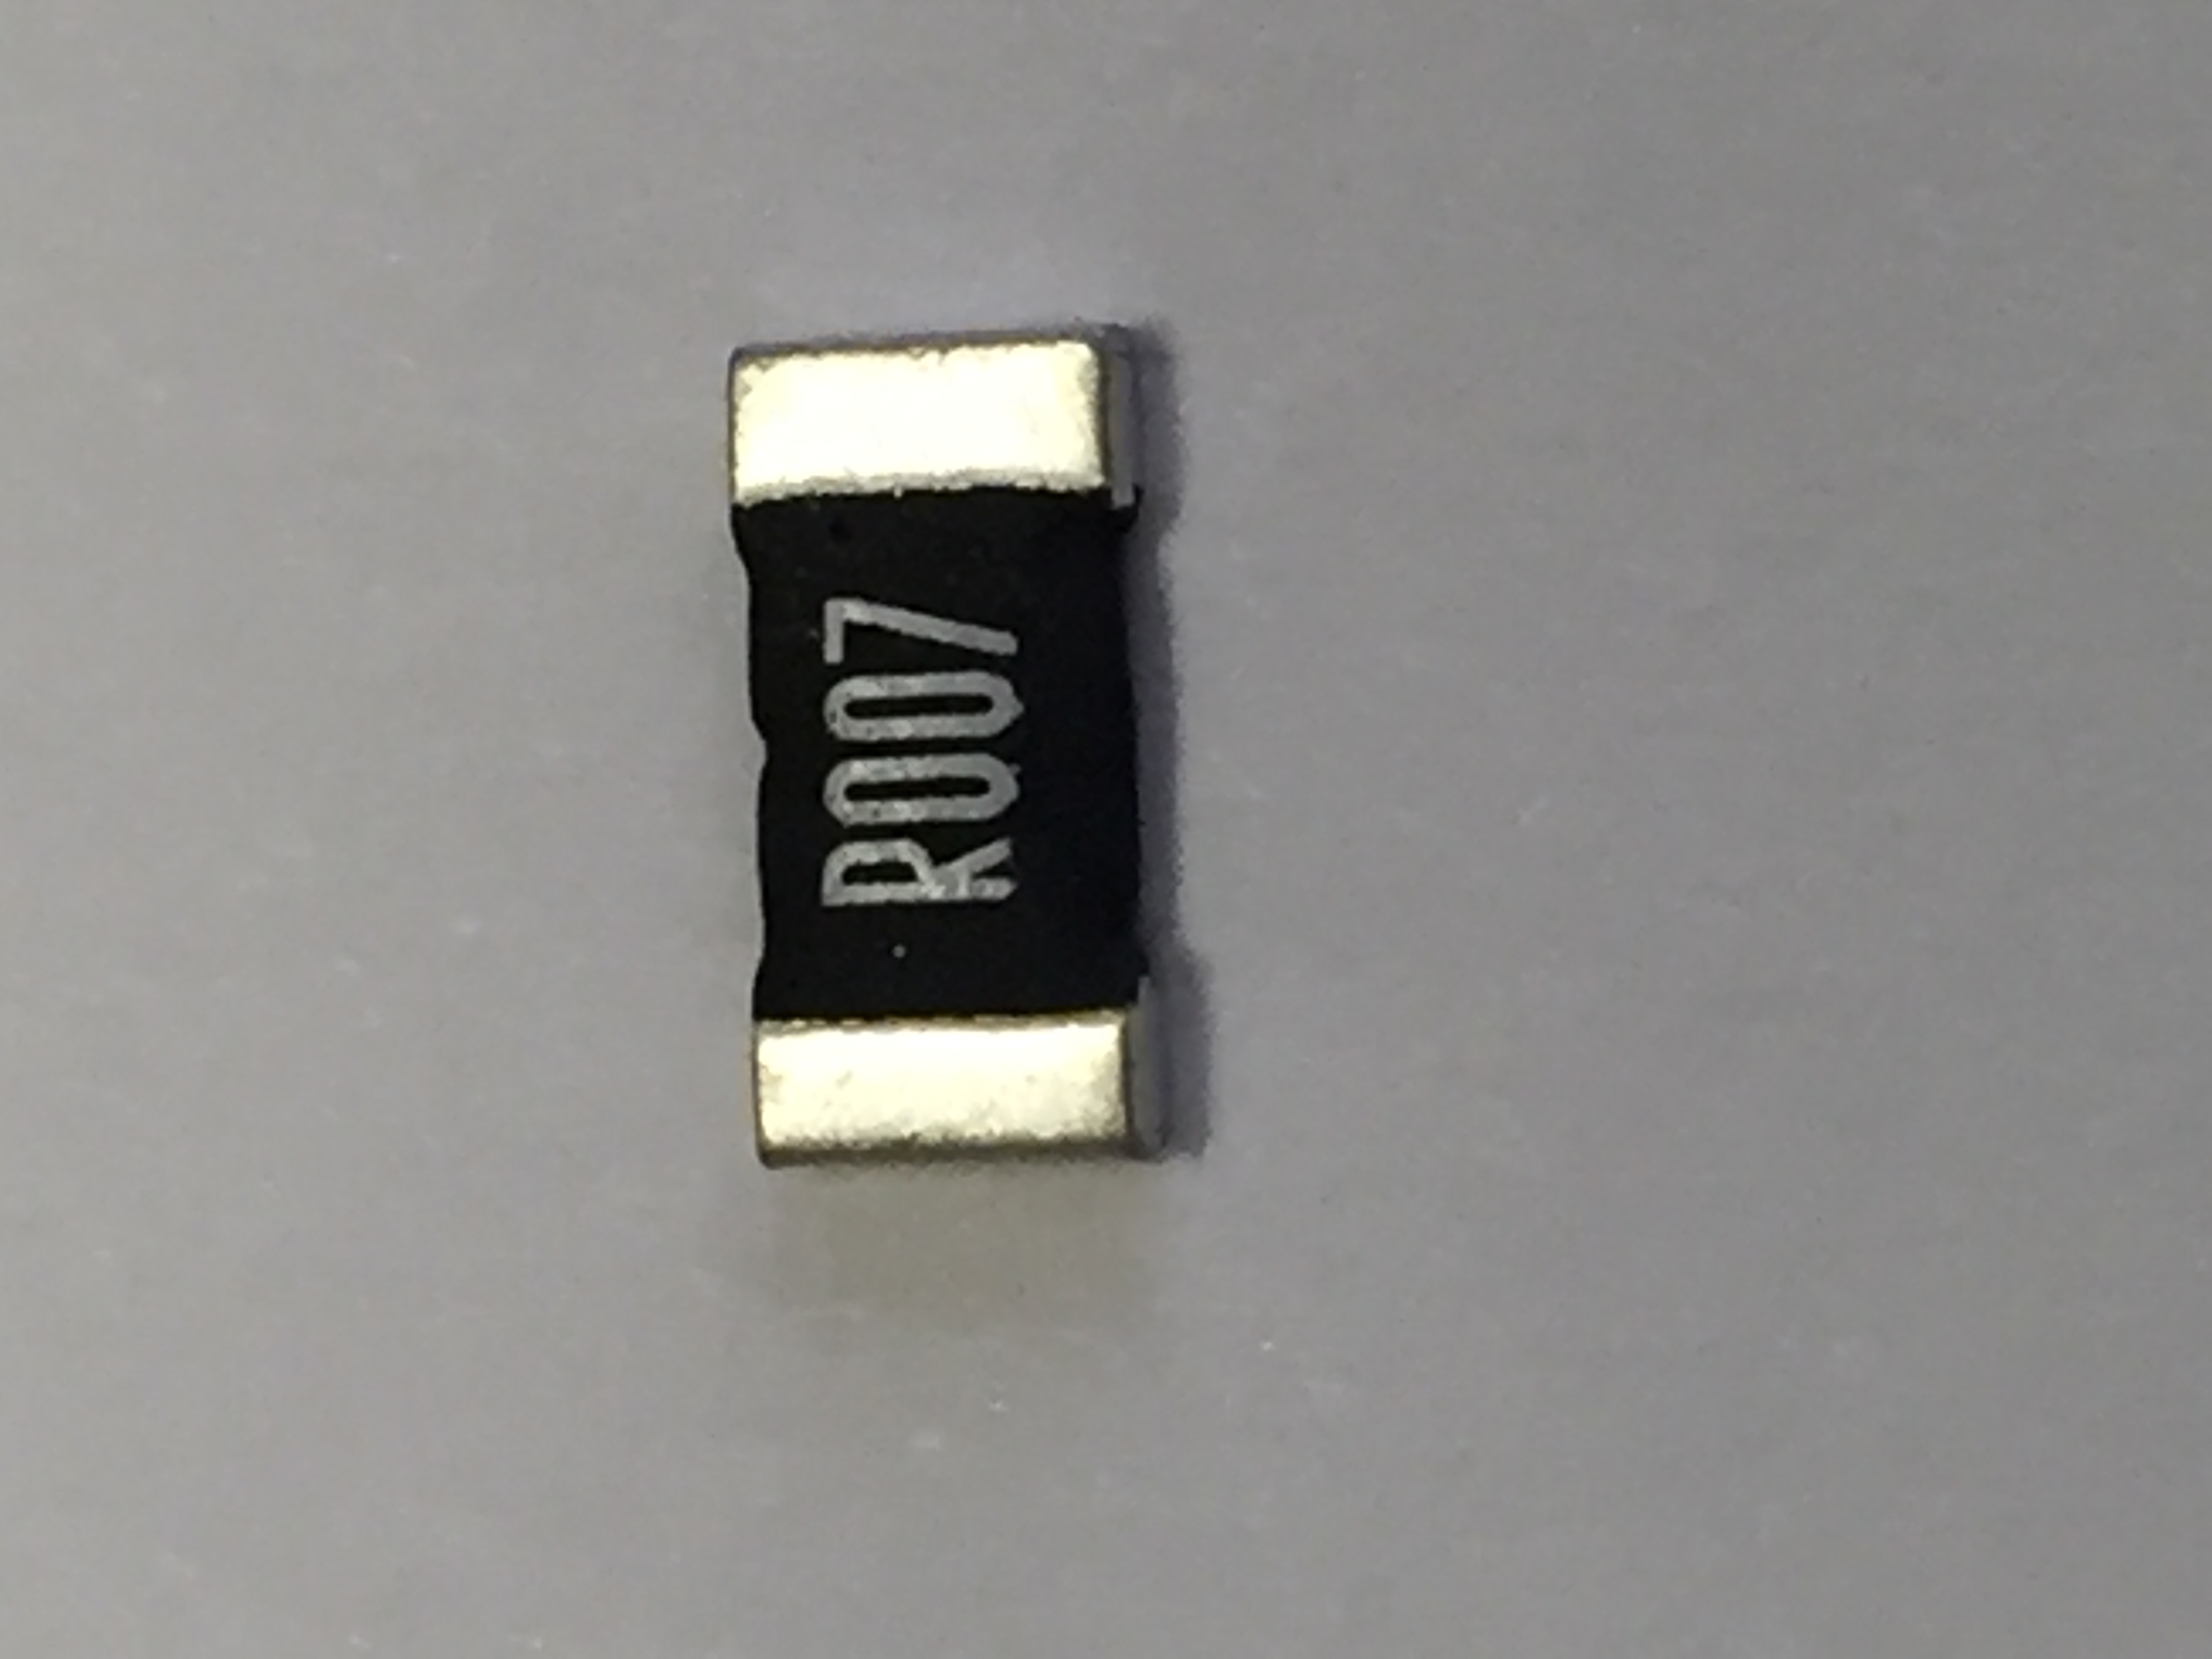 Current Sense Chip Resistors Include a 0.3 Milliohm Value